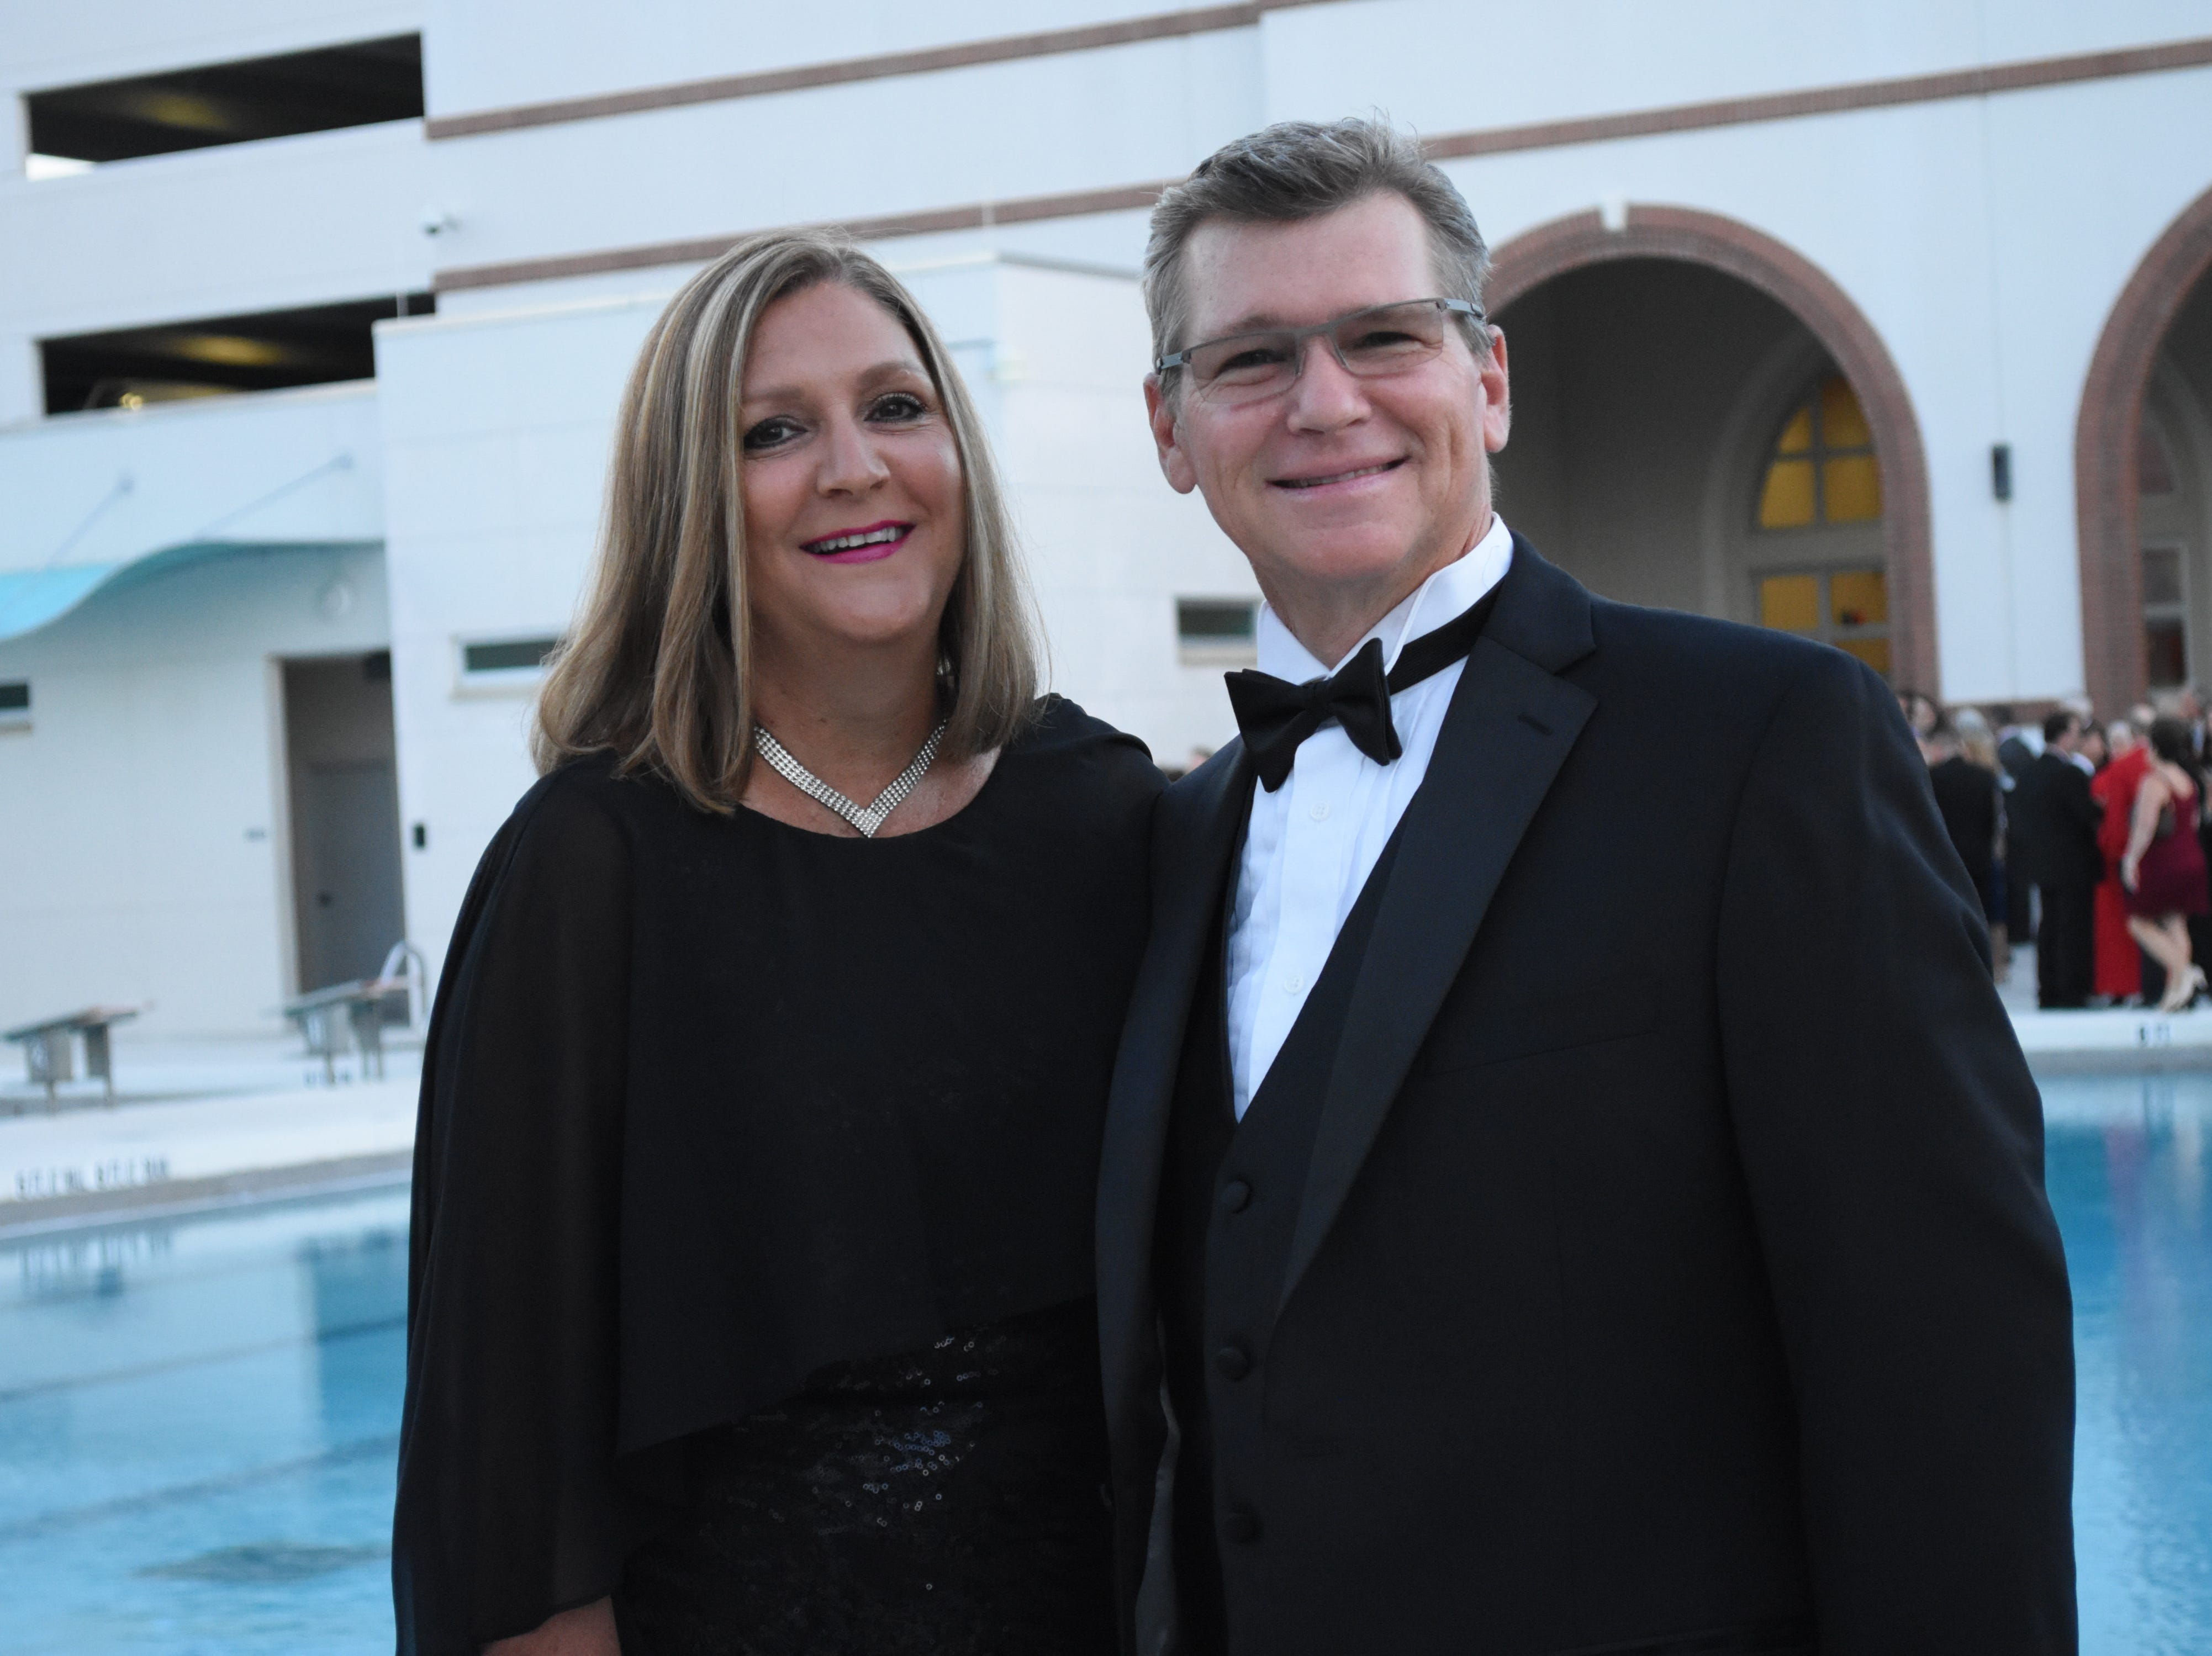 Jackie and Mick Barker pose for a photo at Florida Tech's 60th Anniversary Homecoming Gala Oct. 13, 2018, at the Clemente Center.